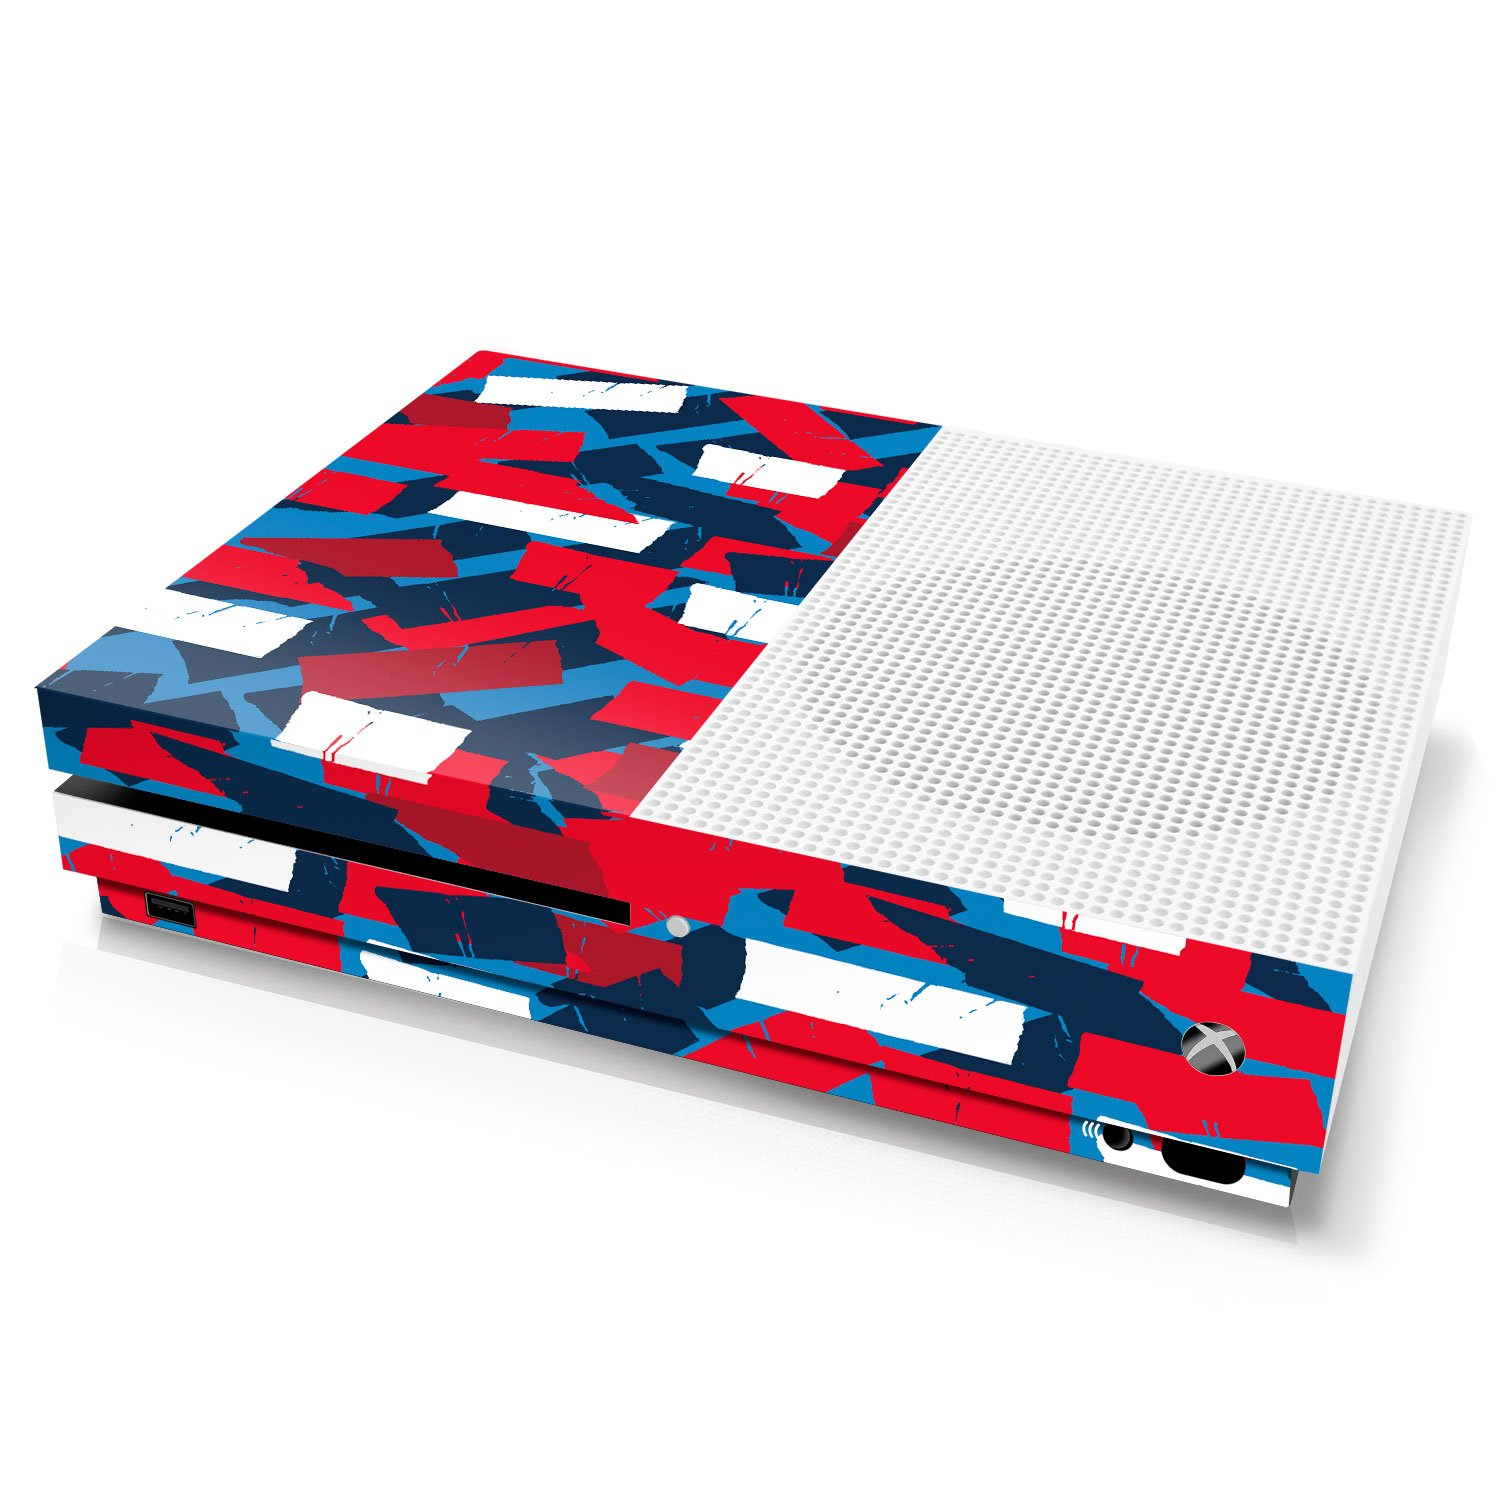 Controller Gear Xbox One S Console Skin - Camouflage: High Fashion Torn Tape - Officially Licensed by Xbox - Xbox One